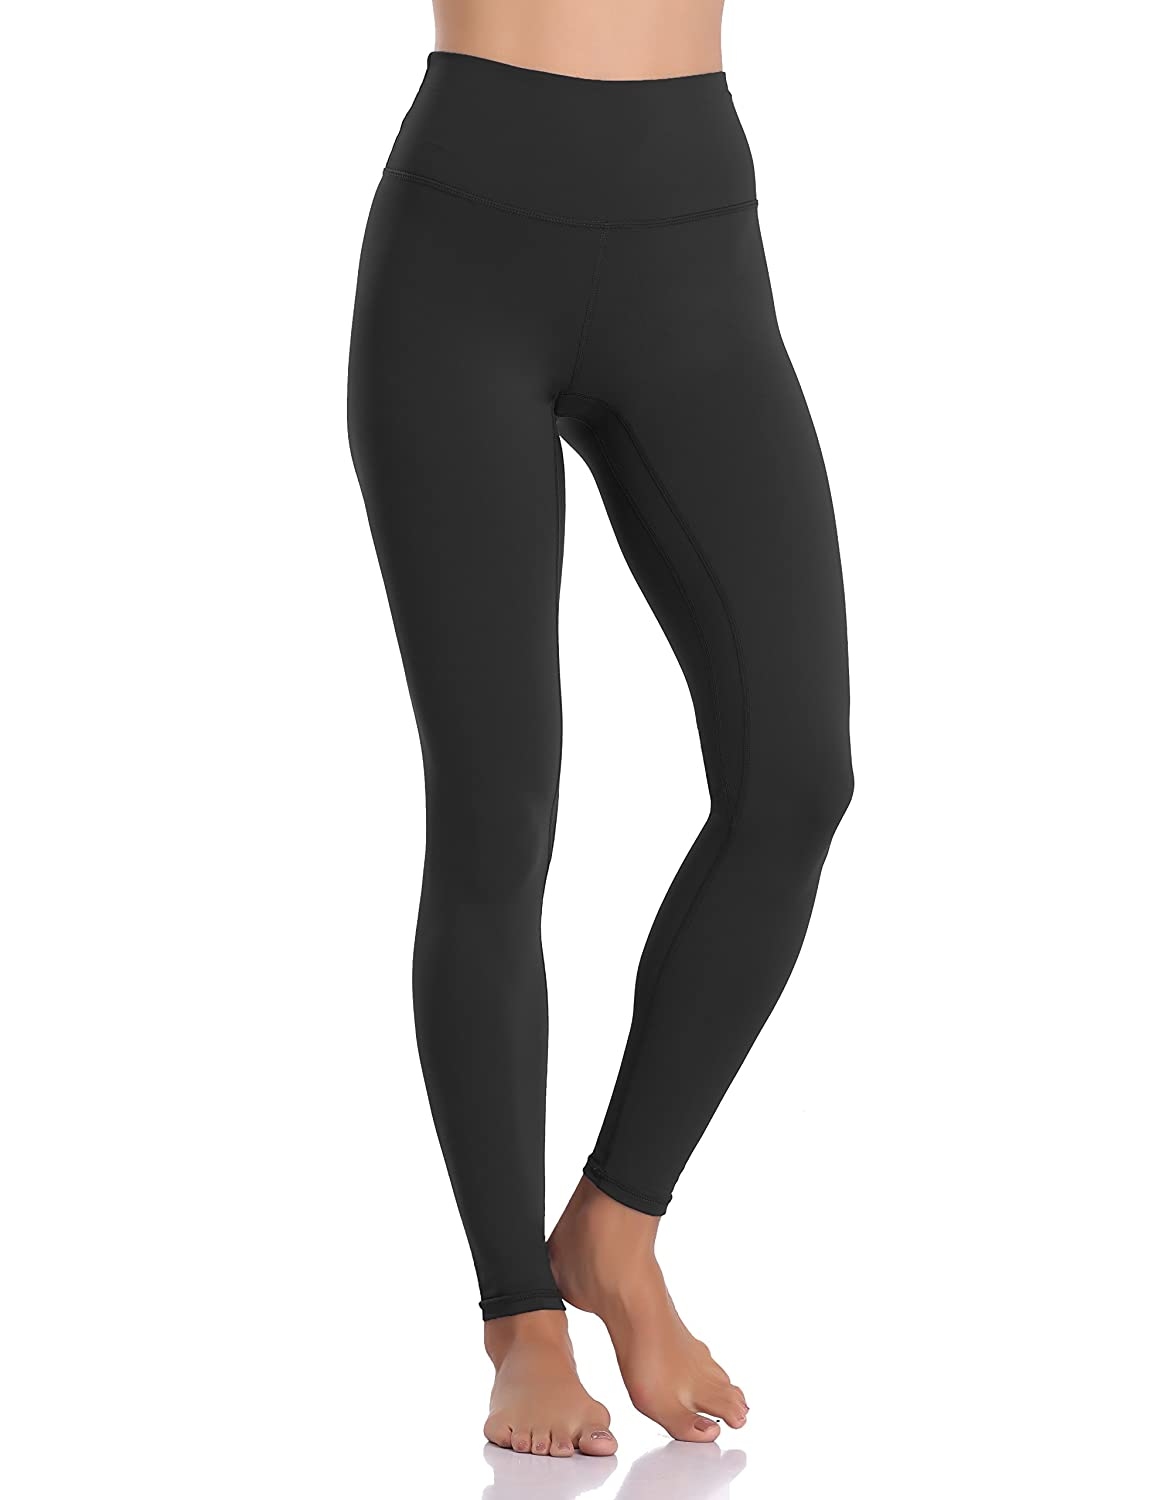 512d9c63f8b8b Colorfulkoala Women's Buttery Soft High Waisted Yoga Pants Full-Length  Leggings at Amazon Women's Clothing store: